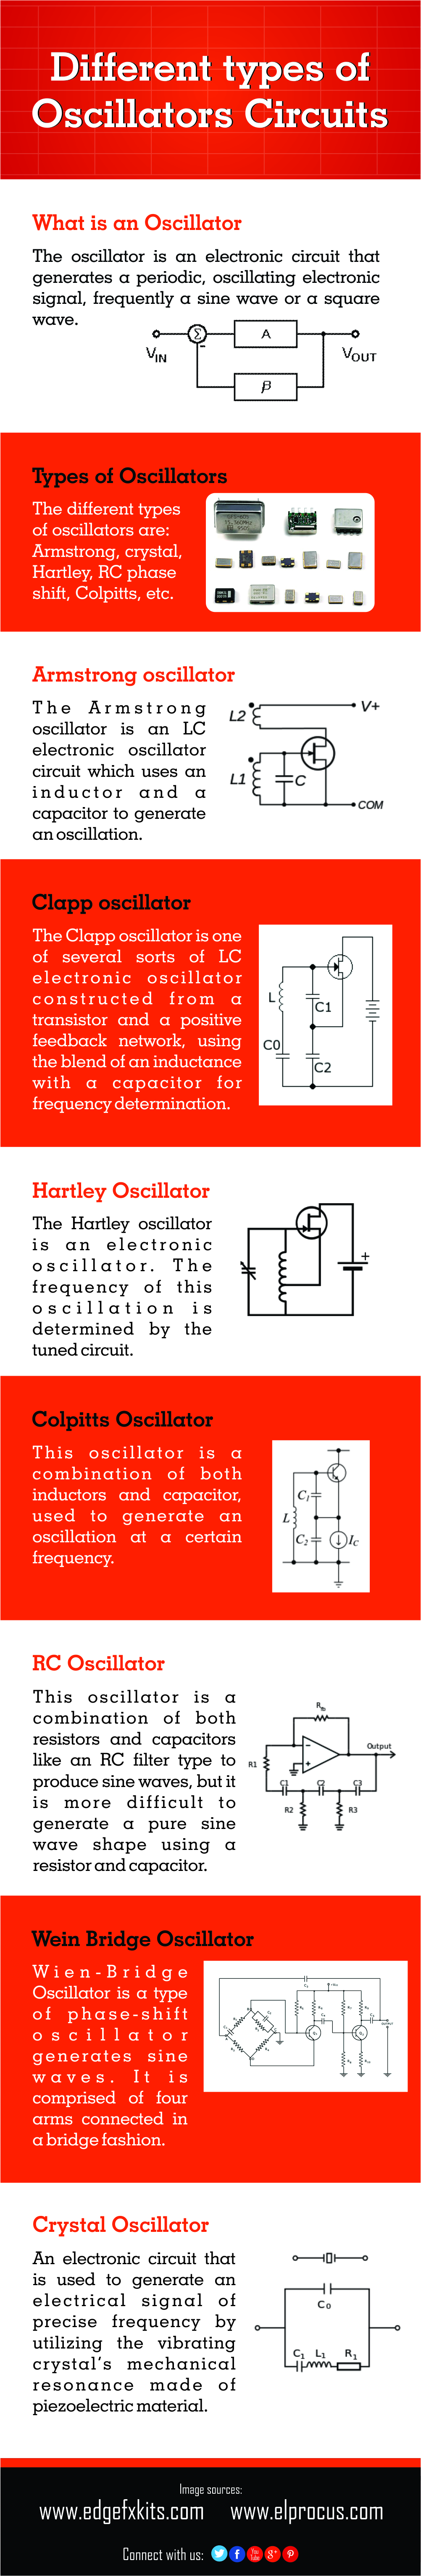 Different Types of Oscillators